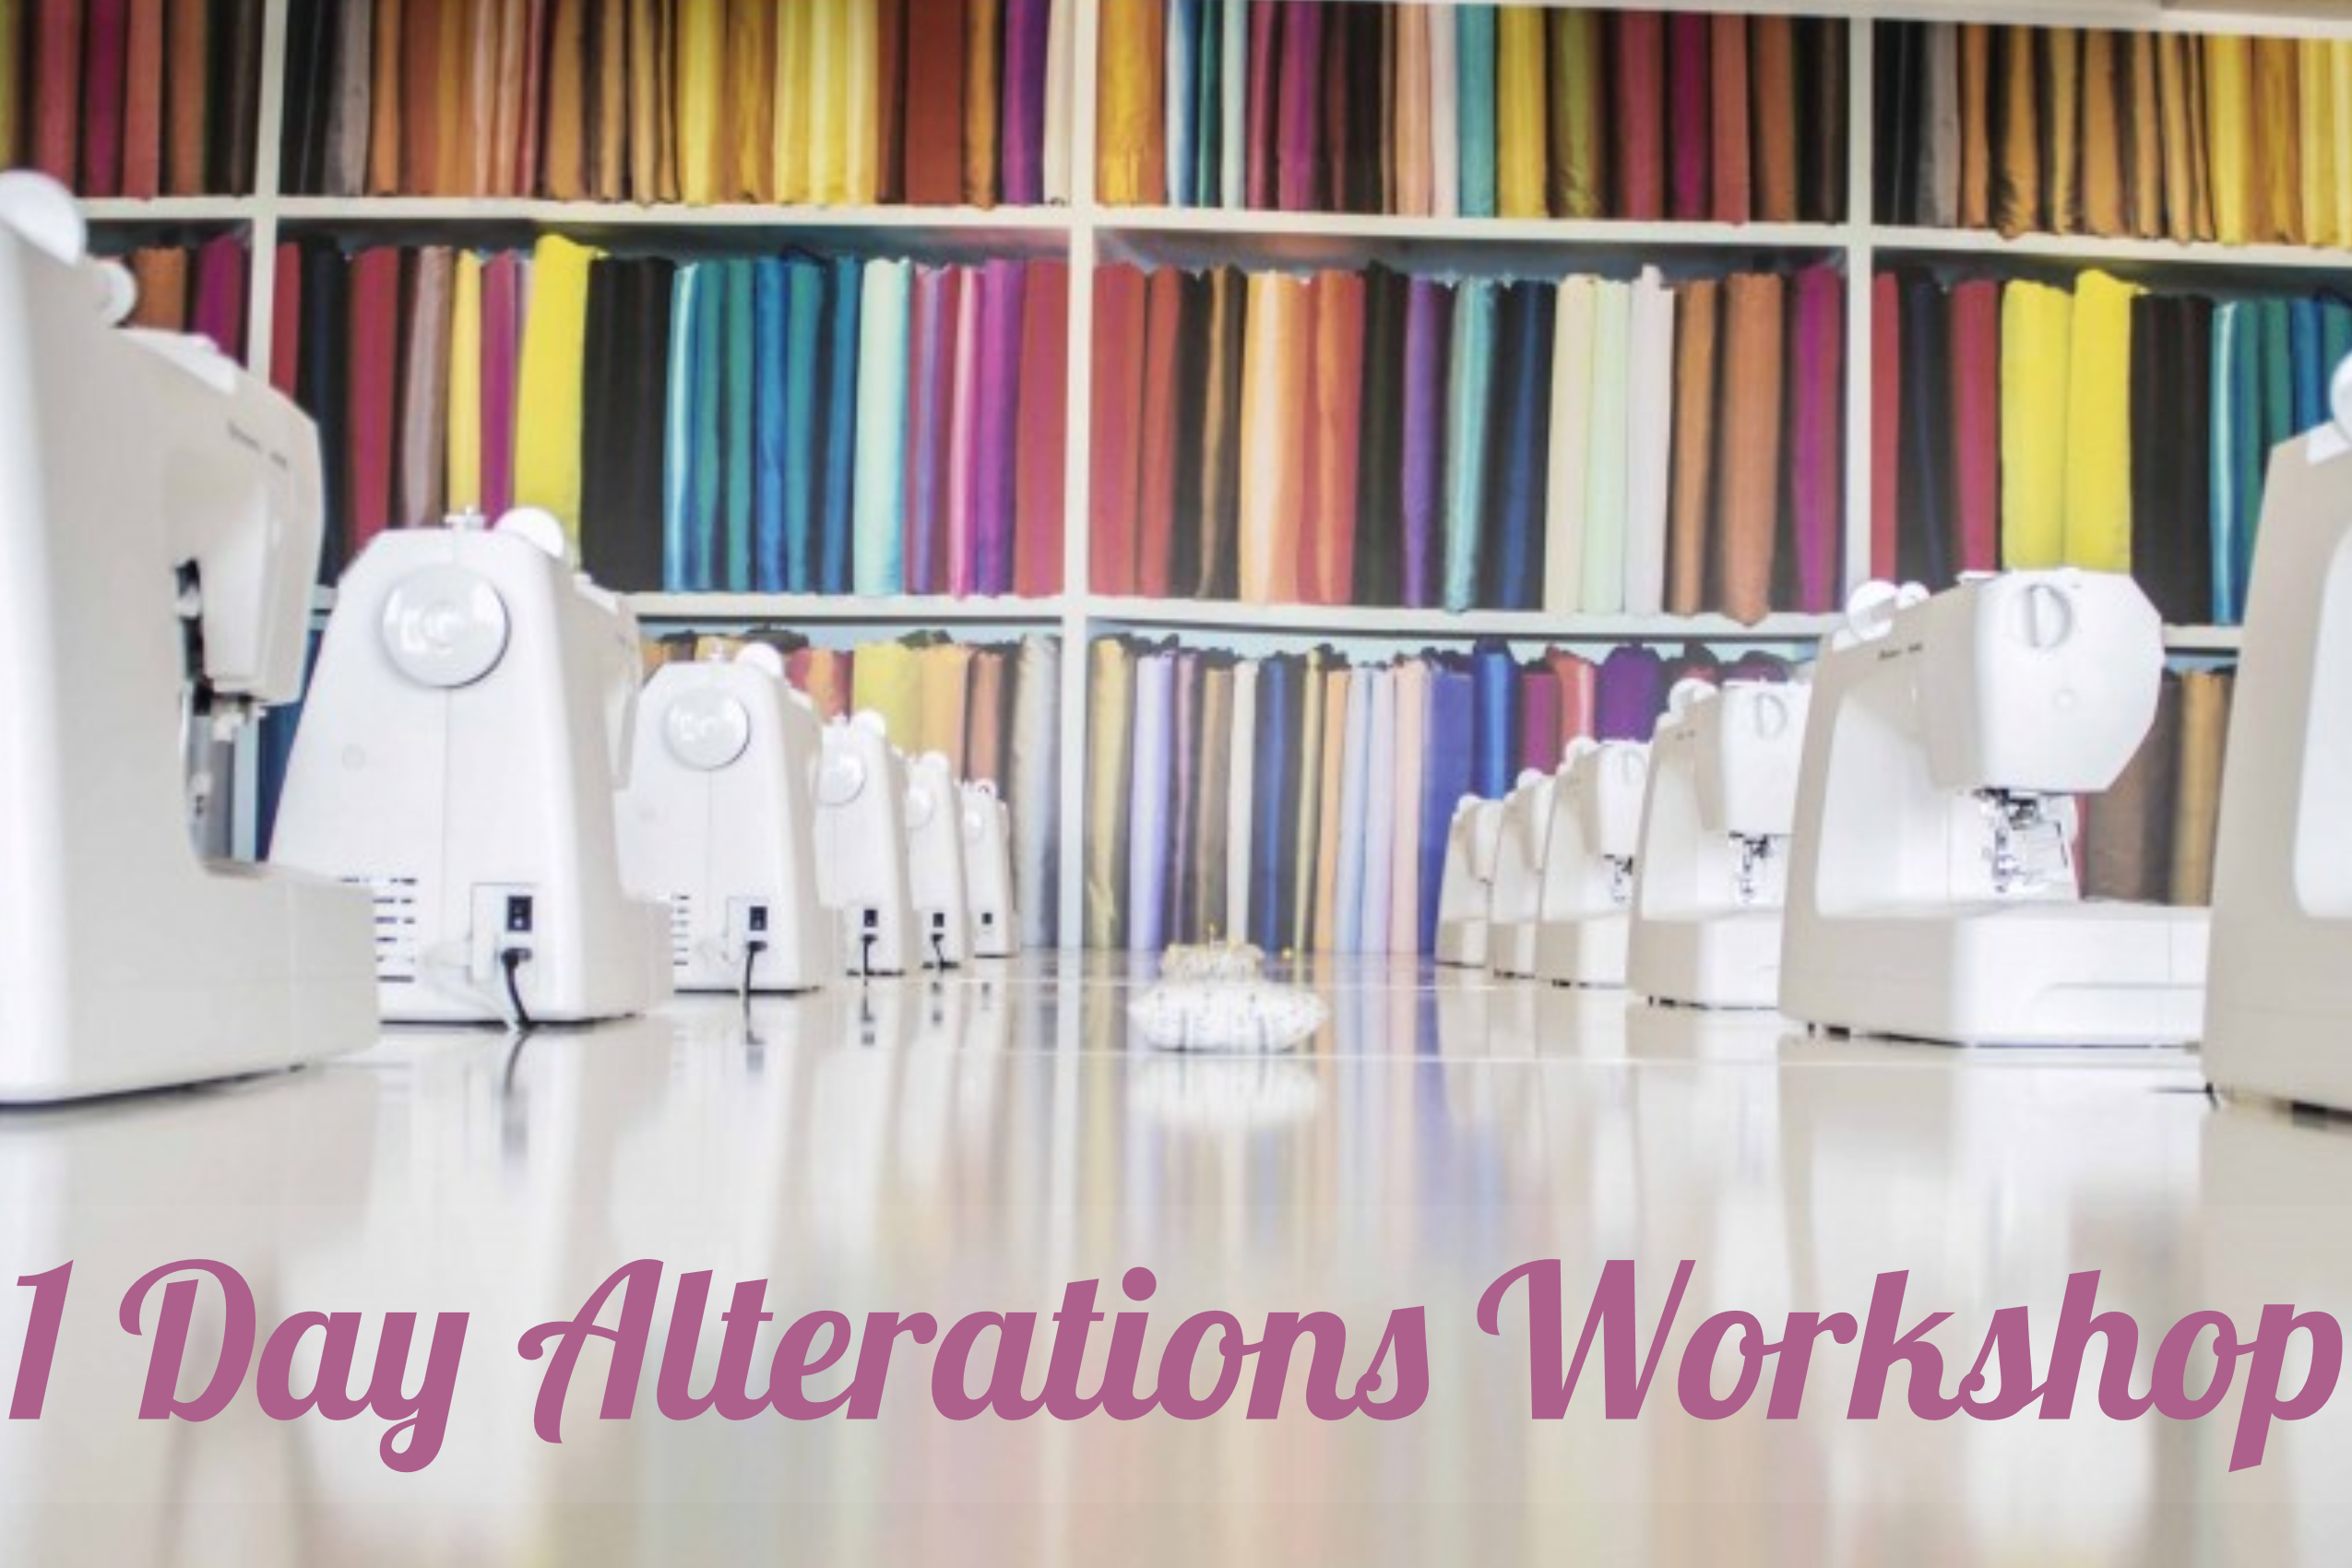 alteration workshop